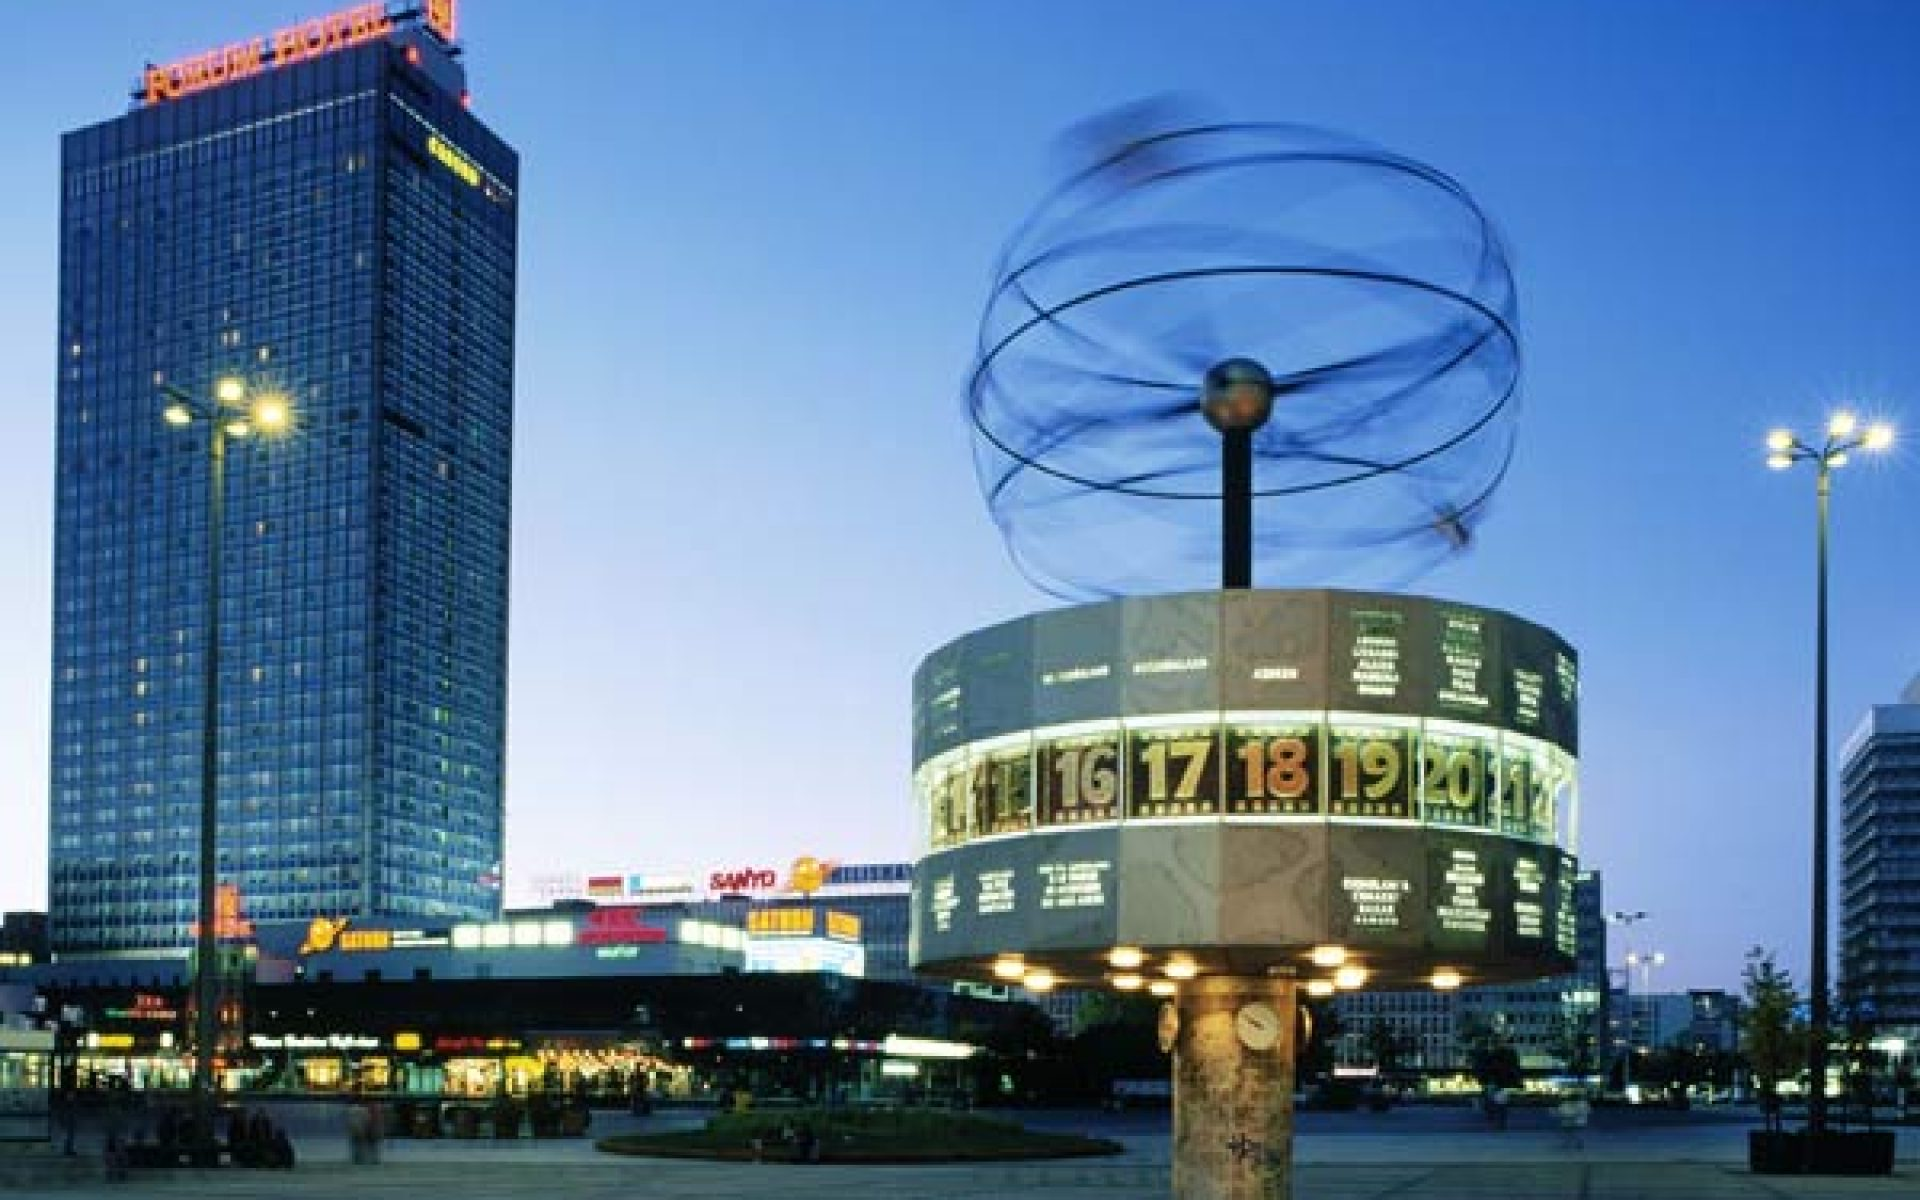 Alexanderplatz World Time Clock